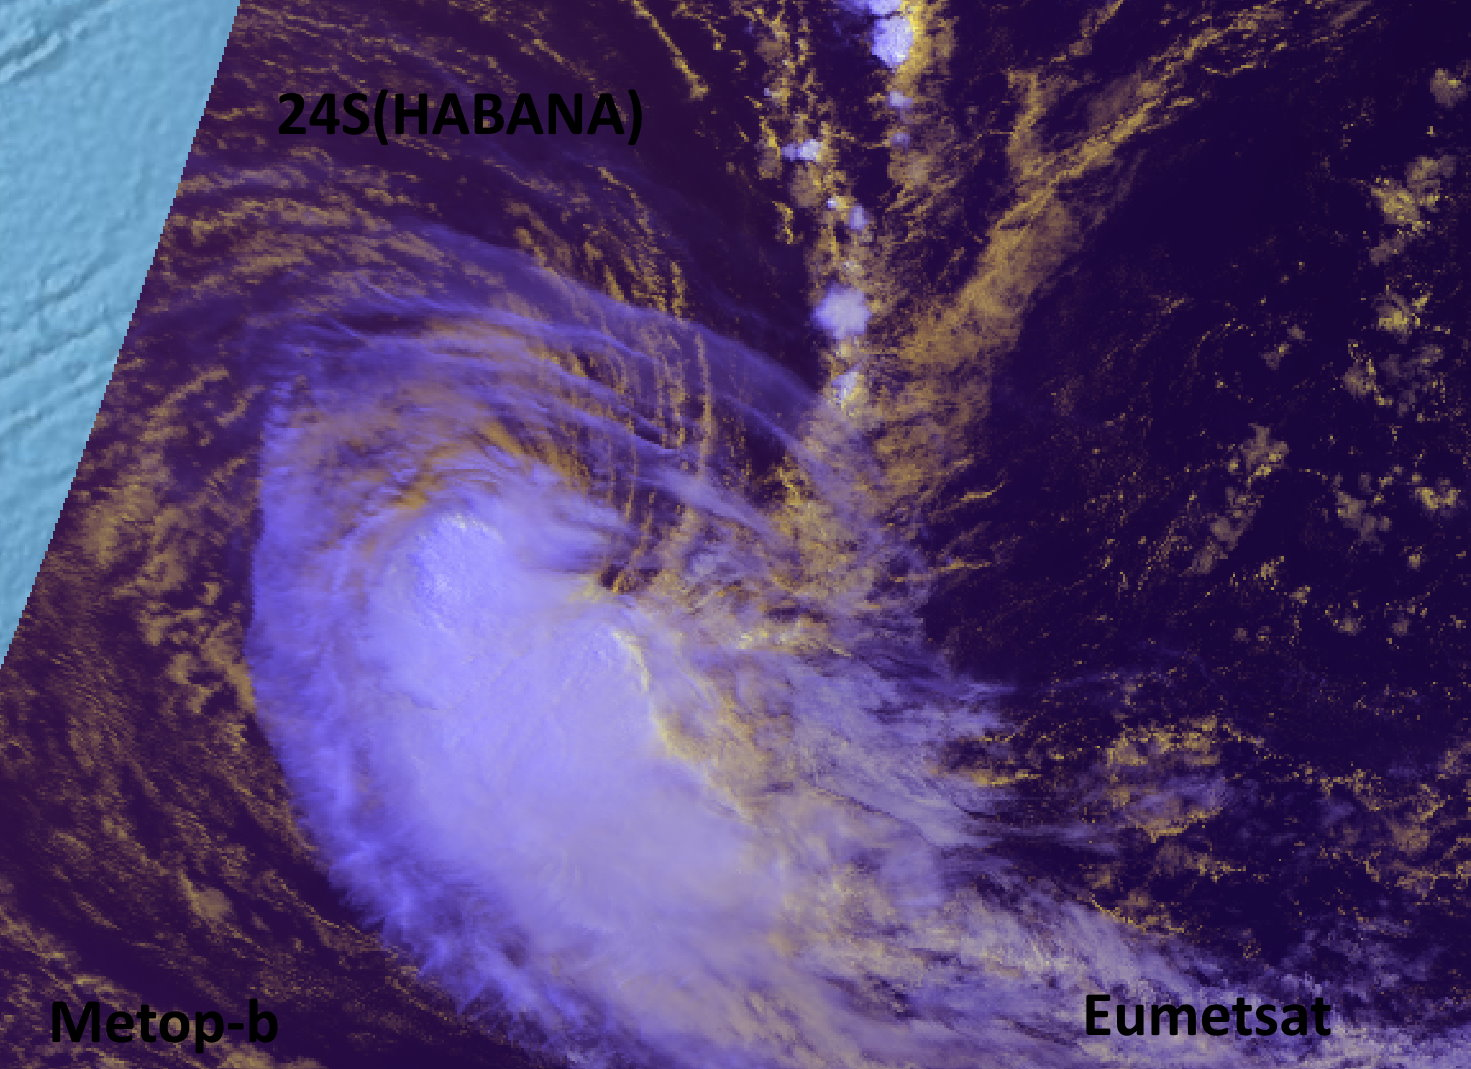 24S(HABANA). 15/0325UTC. METOP-B. THE LOW LEVEL CIRCULATION CENTER WAS ALREADY PARTLY EXPOSED. IT HAS GROWN INCREASINGLY EXPOSED SINCE THEN. Eumetsat.